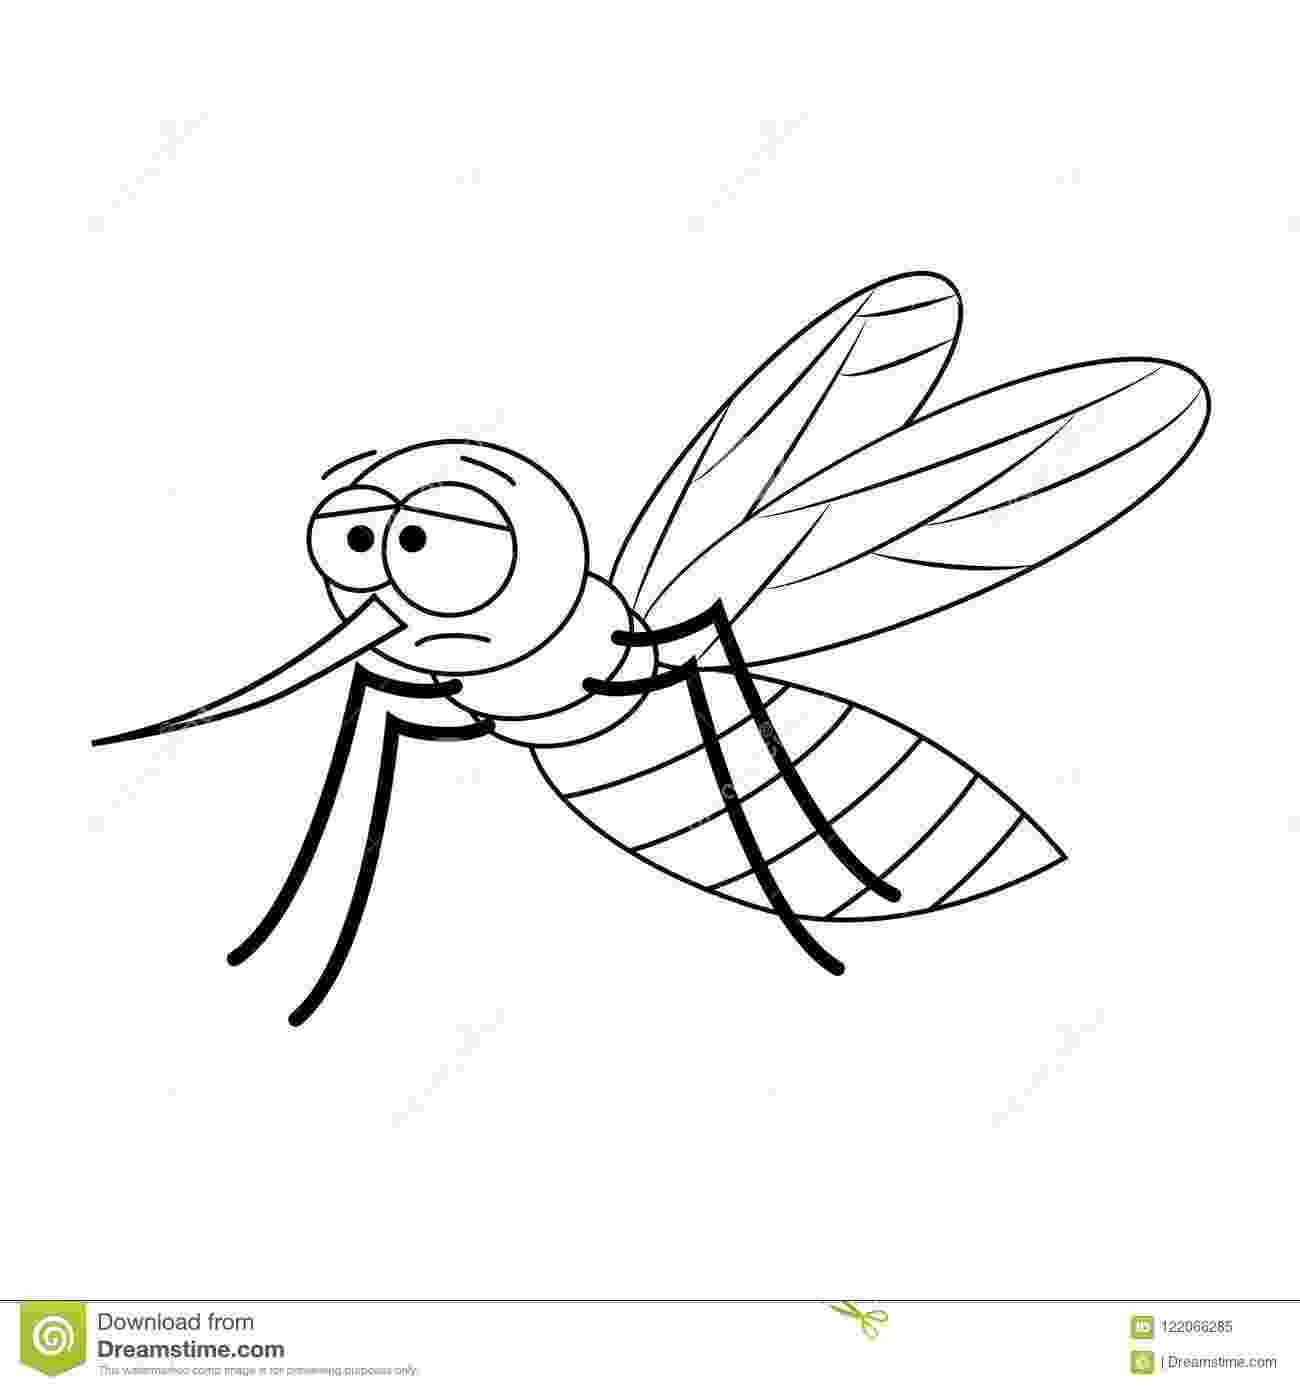 mosquito coloring page free printable mosquito coloring pages for kids mosquito coloring page